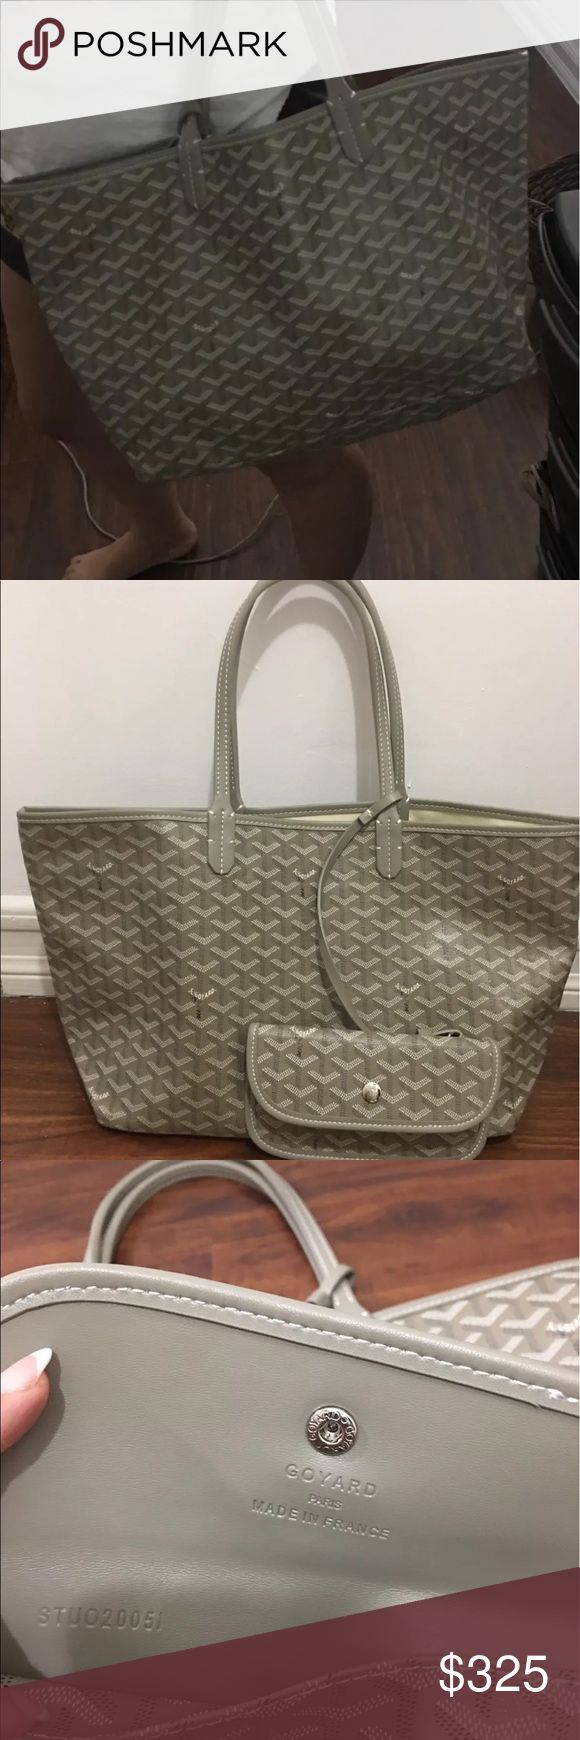 Bag Gorgeous inspired by top designer. New with dust bag. Purchase online and changed my Mind cuz I bought something else. Leather strap. Identical to Goyard Bags Shoulder Bags